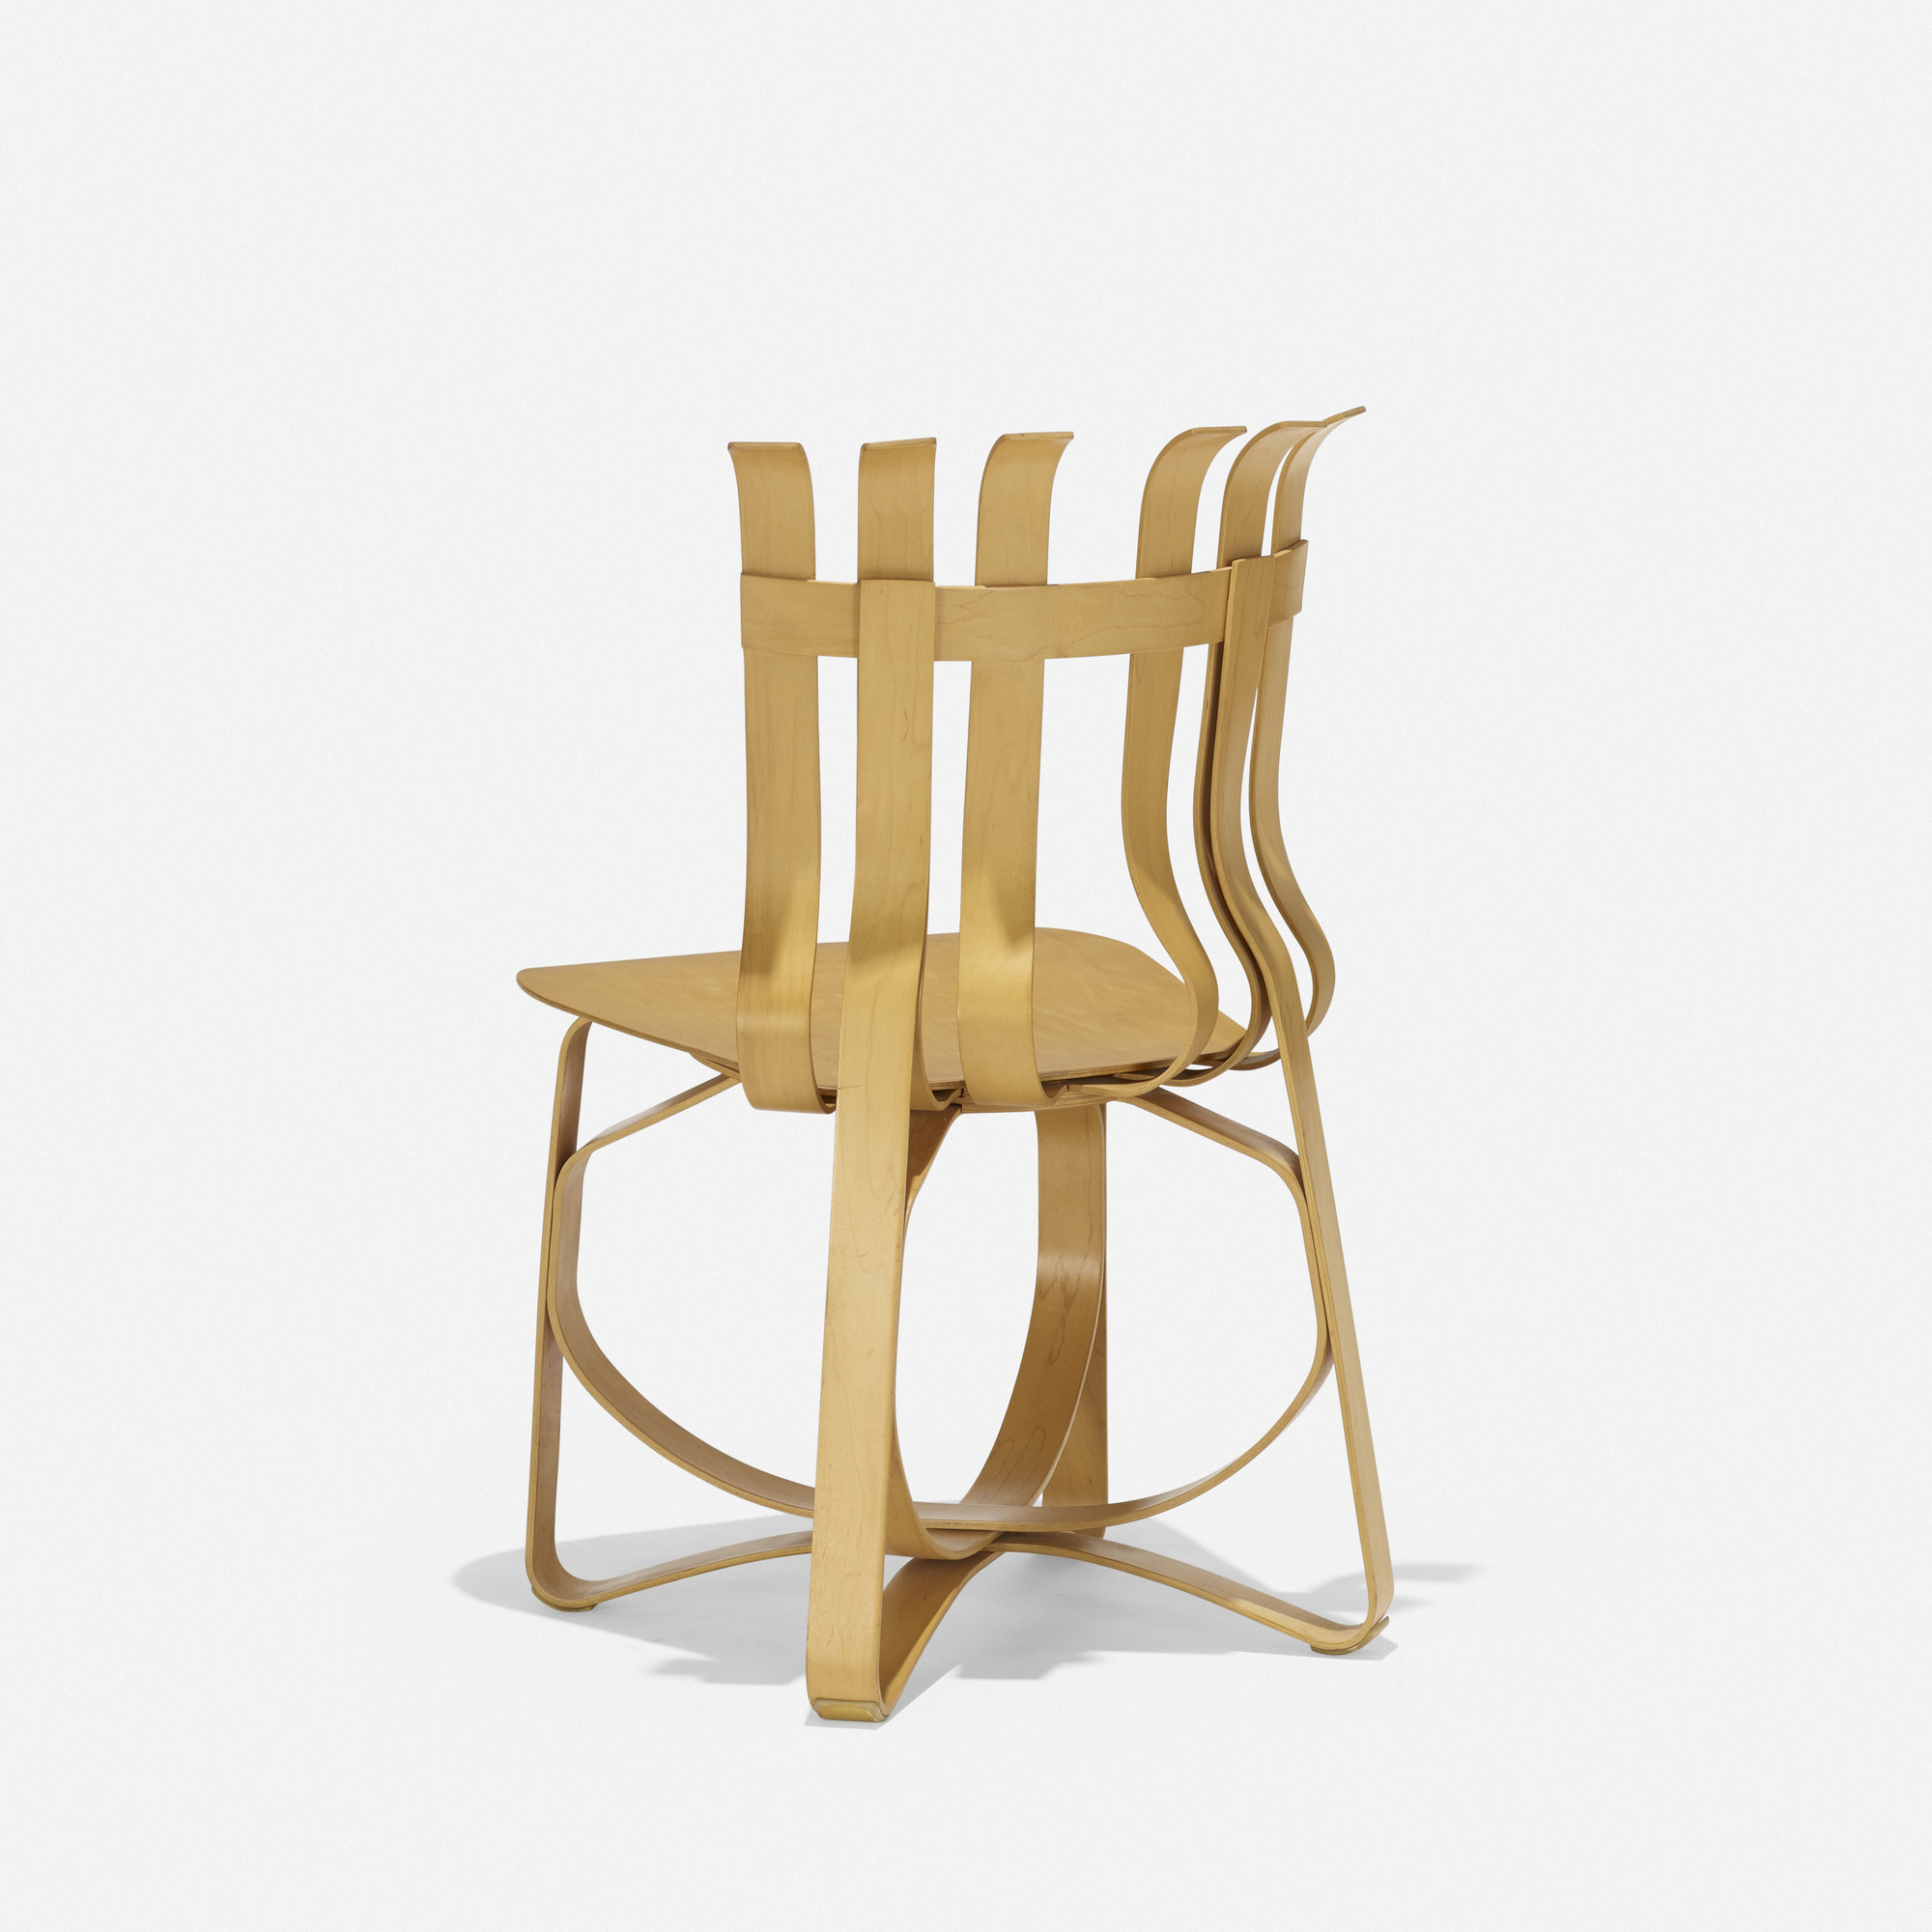 116: Frank Gehry / Hat Trick chair (3 of 4)